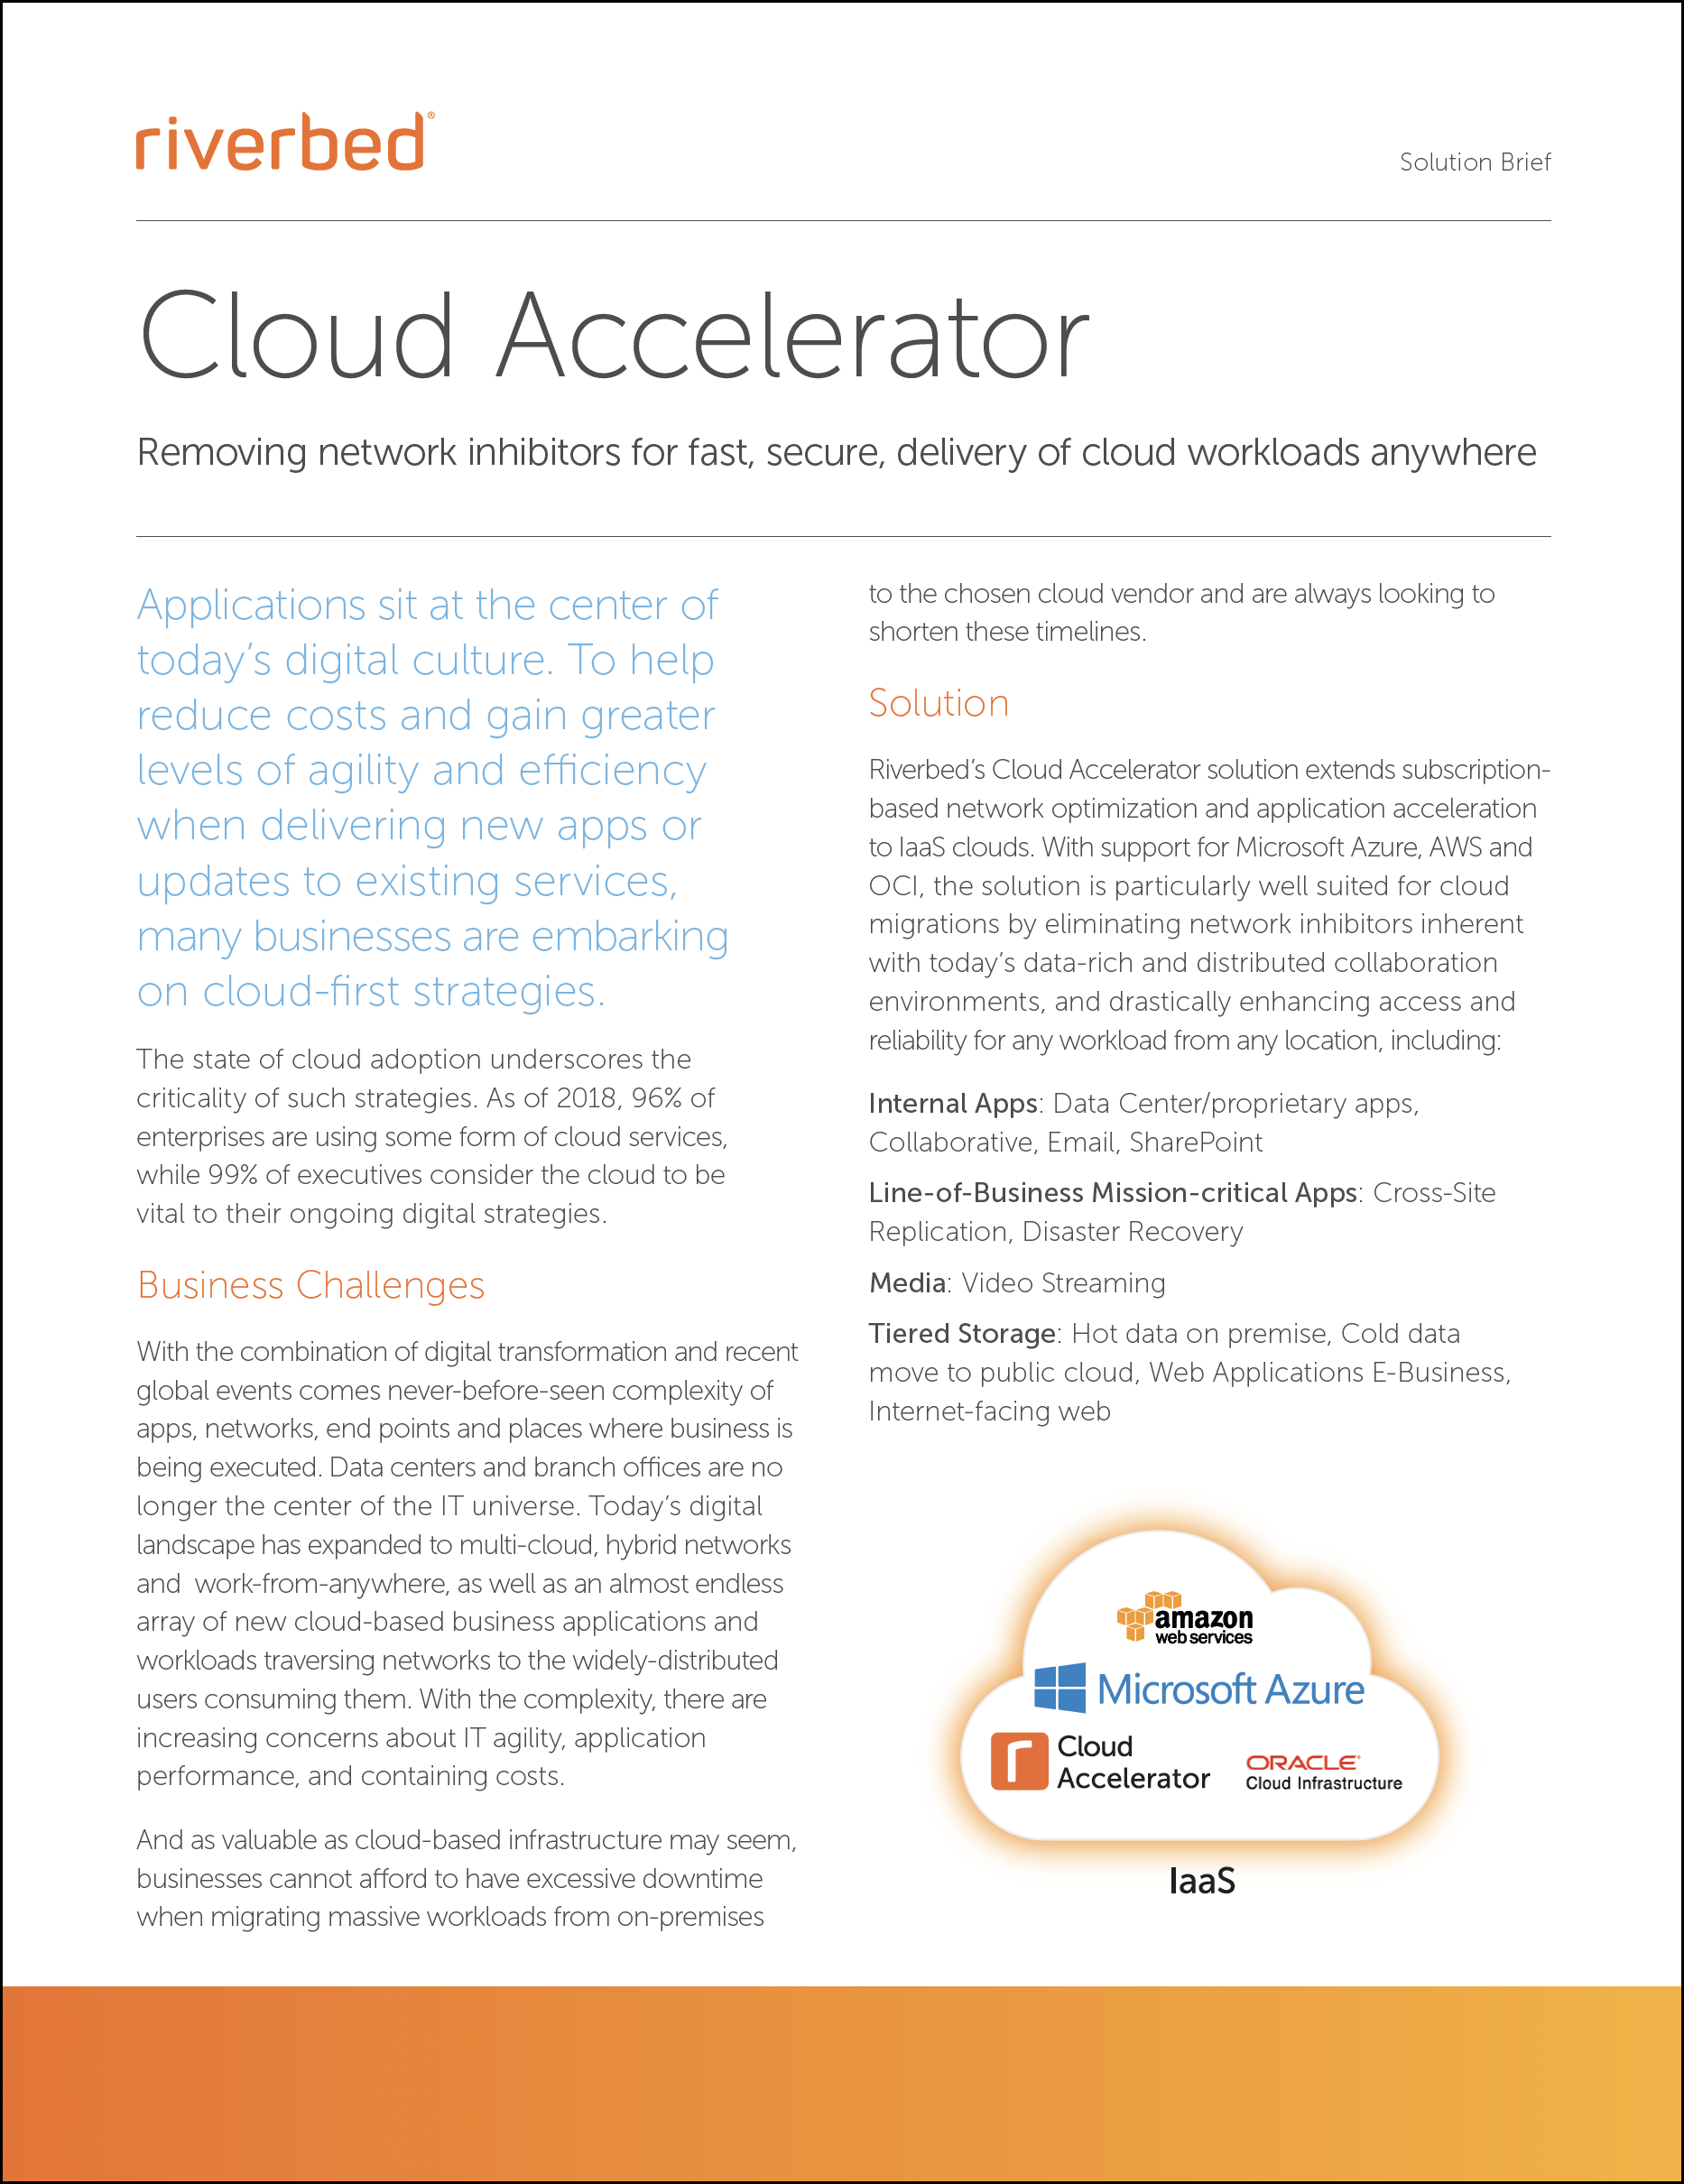 Riverbed Cloud Accelerator Solution Brief Cover